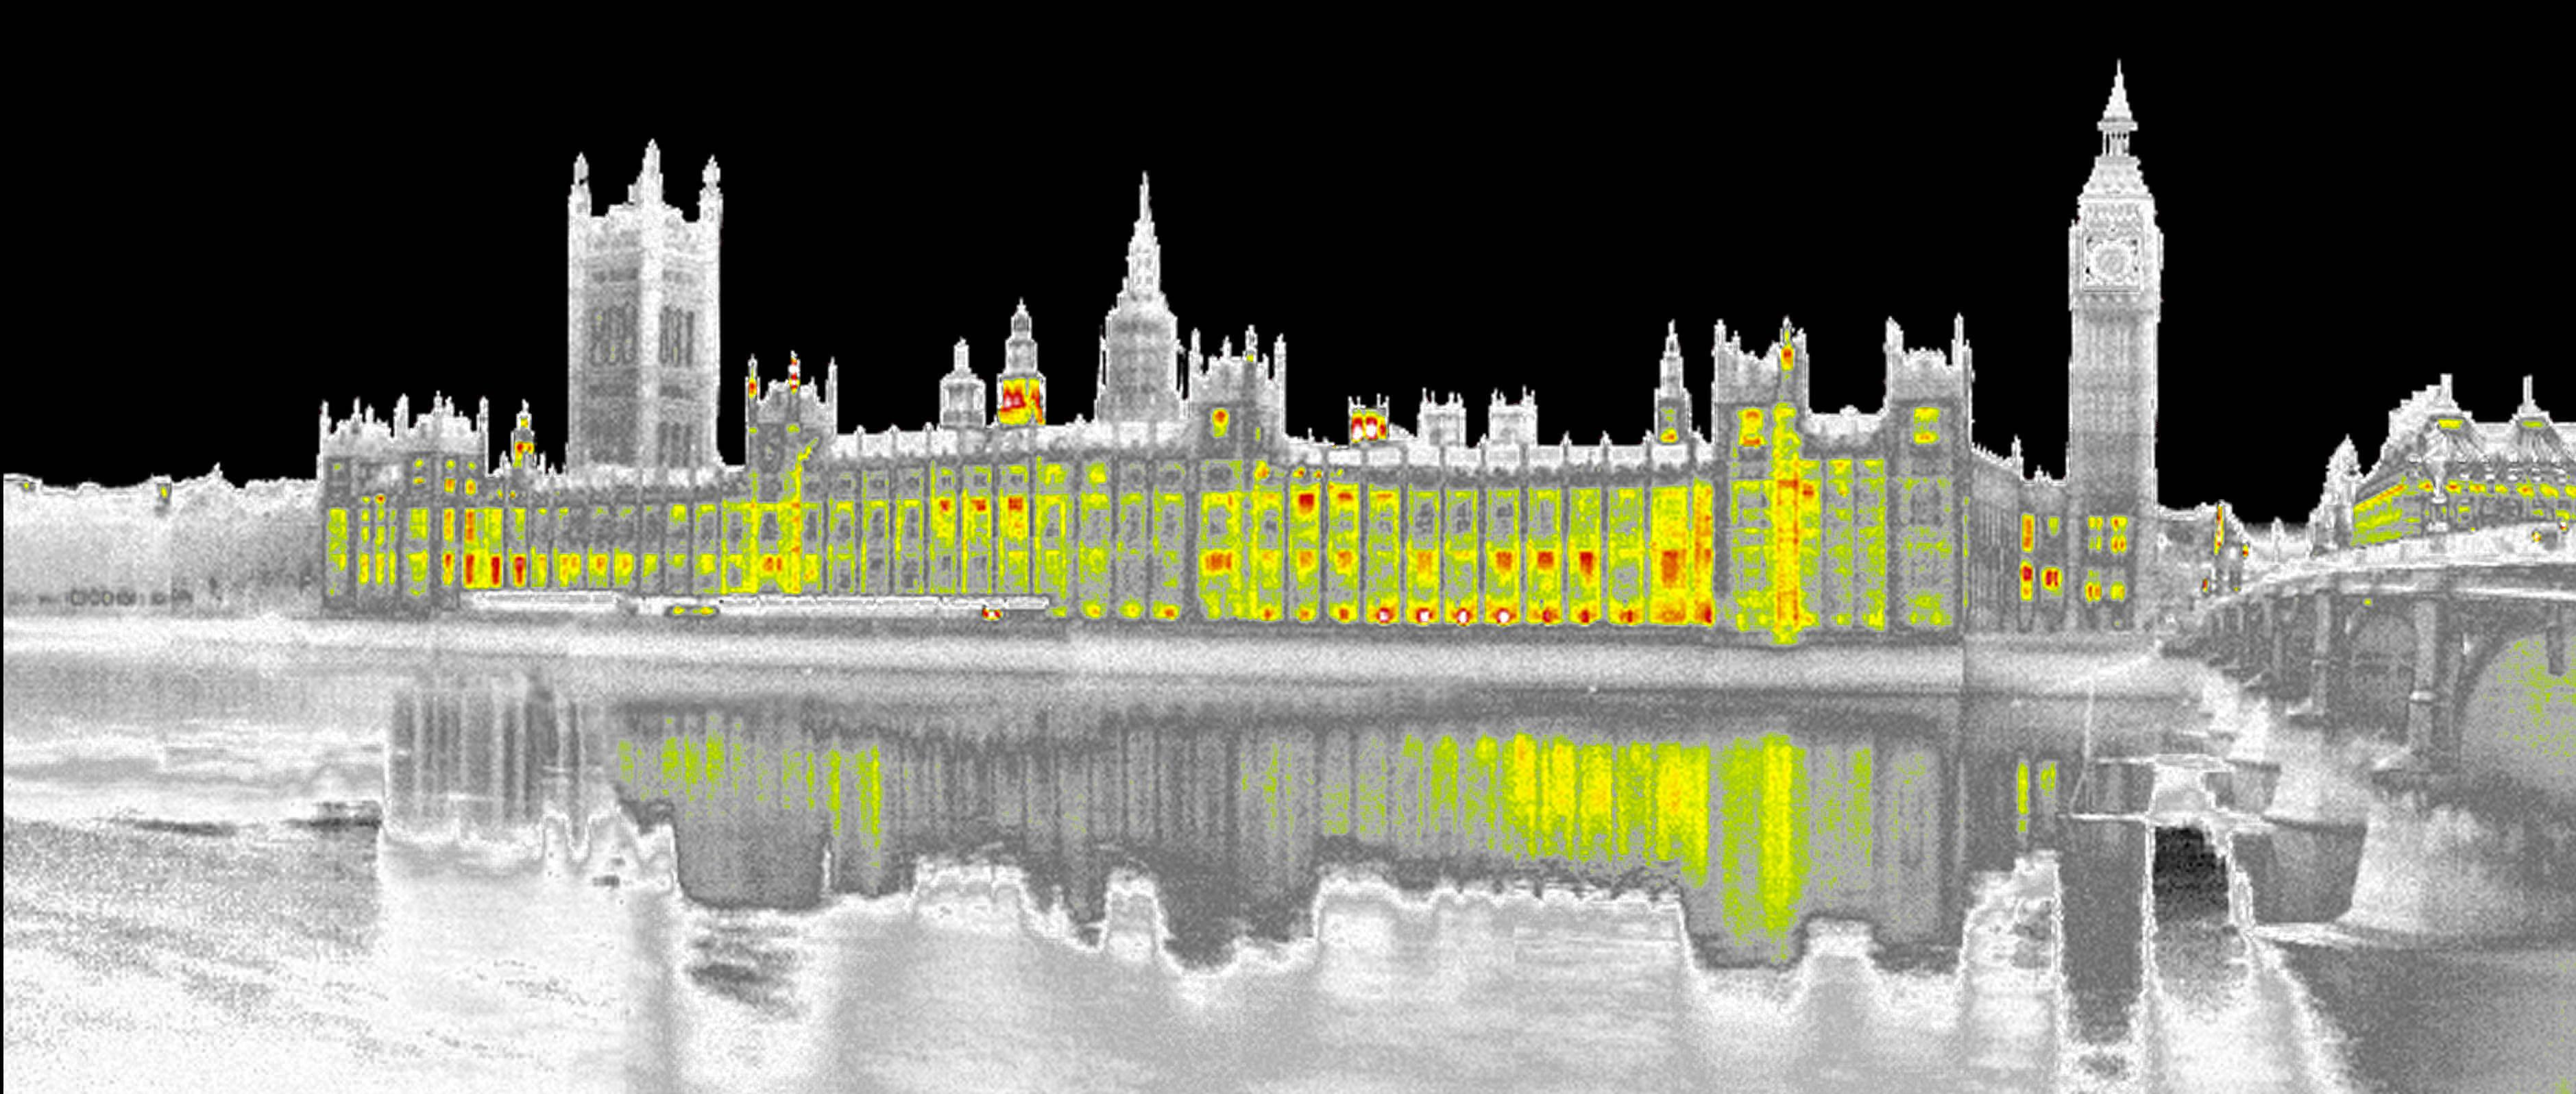 thermal imaging of the houses of parliament